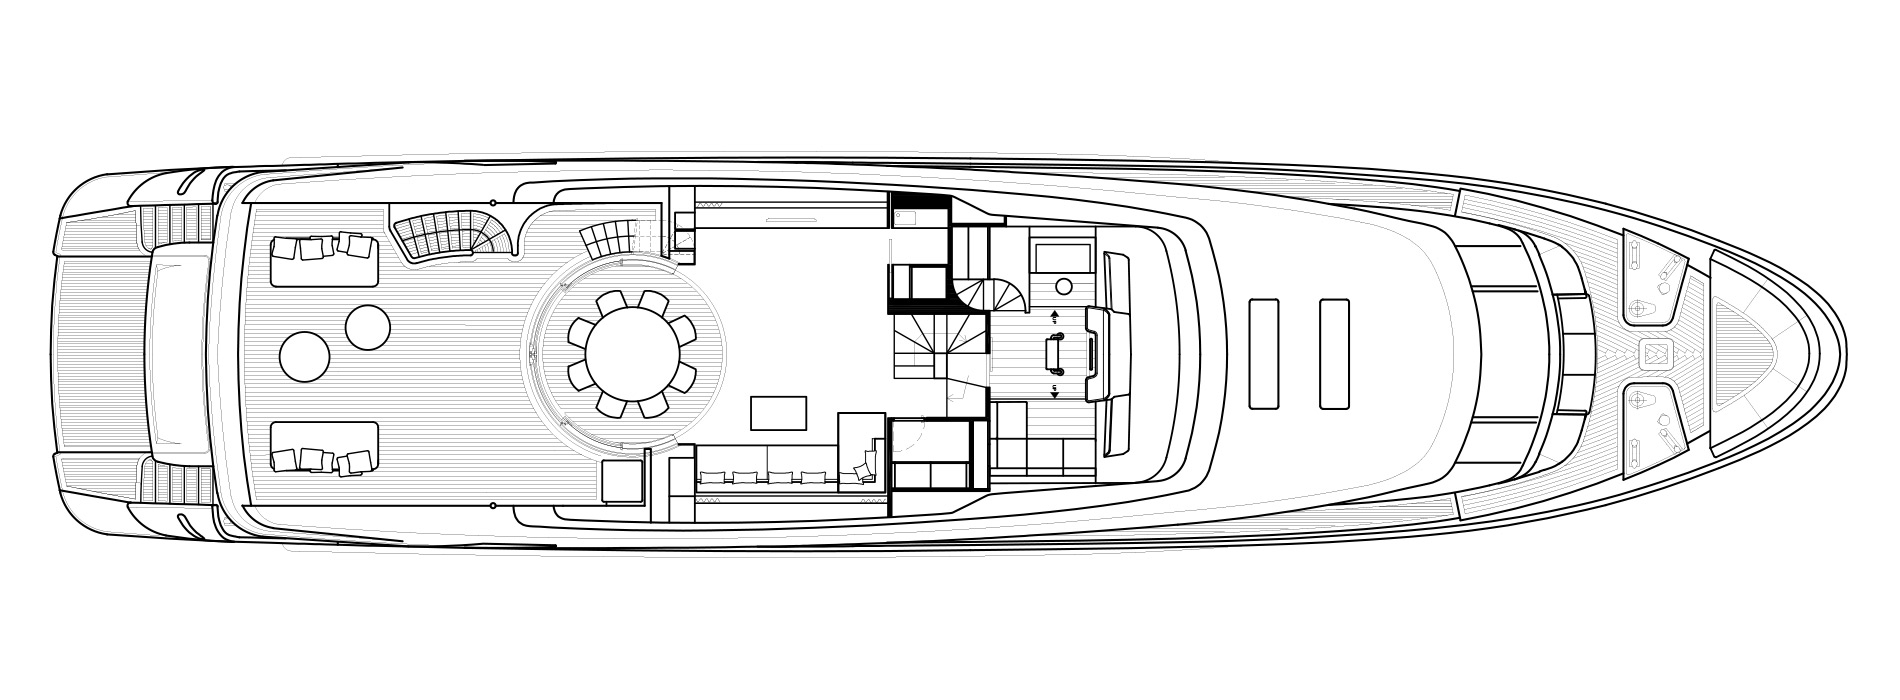 Sanlorenzo Yachts SD112 Upper Deck Version B